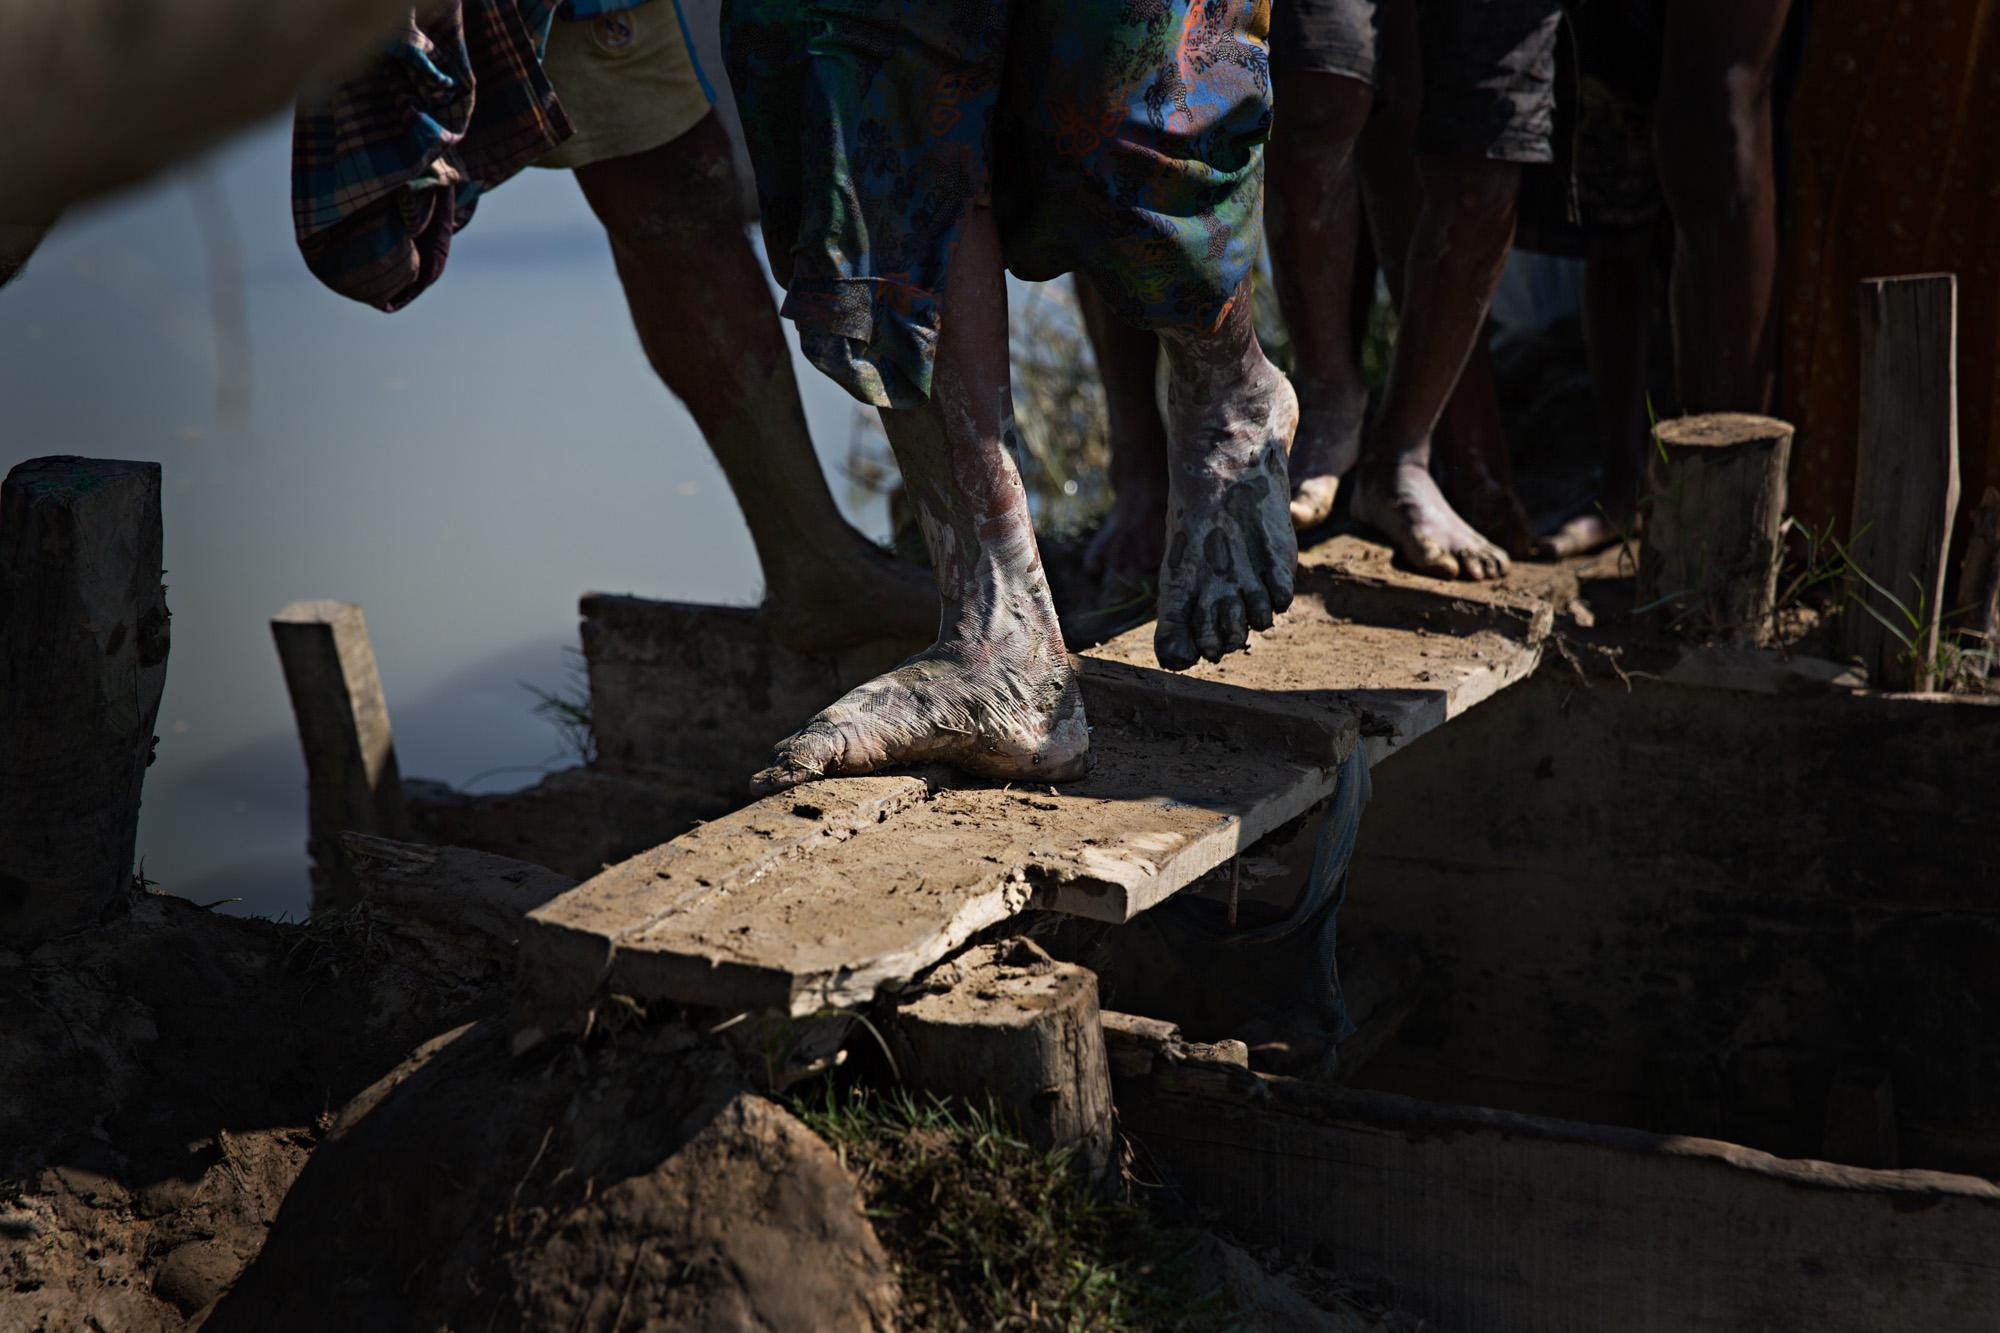 The feet of Rohingya refugees are seen crossing a narrow wooden plank as they make their way along narrow, muddy paths through a rice field after crossing the Naf River from Myanmar into Bangladesh. On this day an estimated 30,000 refugees made the crossing. Due to the narrow passages, going was slow and the temperatures were incredibly hot. Evening saw a monsoon rain come to the field. Many were suffering from exhaustion and malnutrition, while others had gunshot and knife wounds.